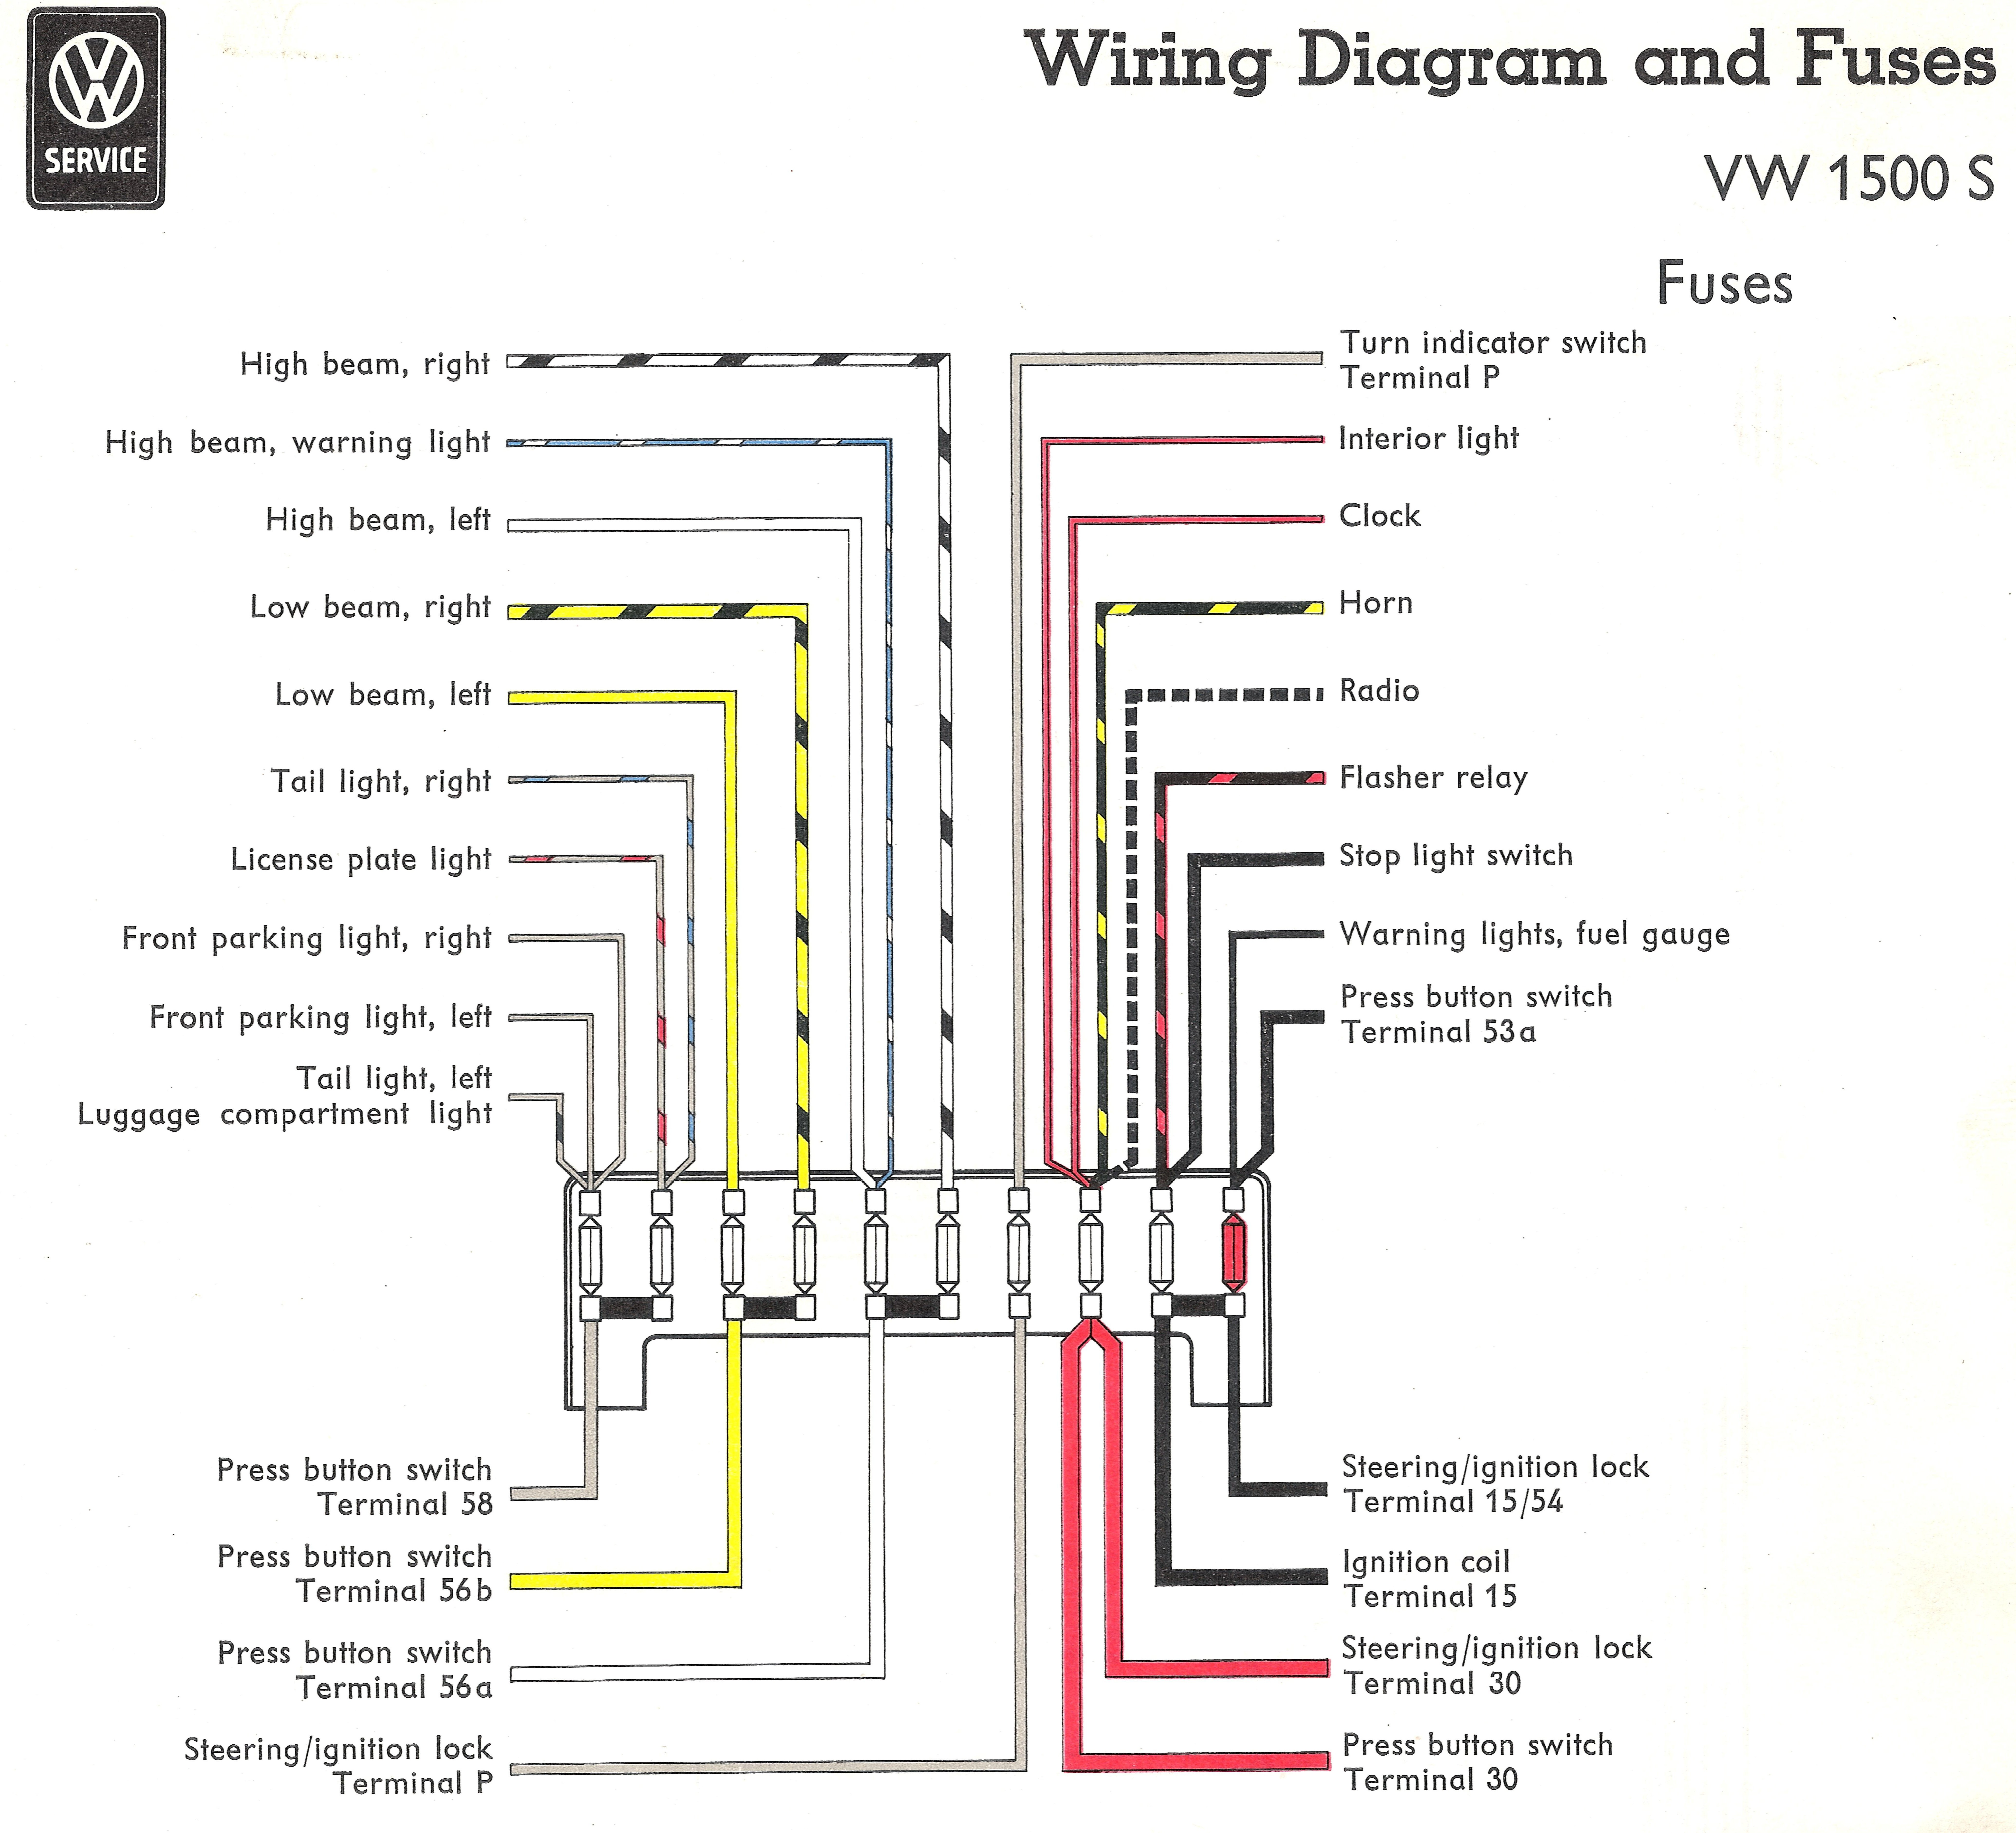 1973 Vw Transporter Bus Wiring Diagram Not Lossing 69 Volkswagen Bug Voltage Regulator Thesamba Com Type 3 Diagrams 67 1974 Beetle